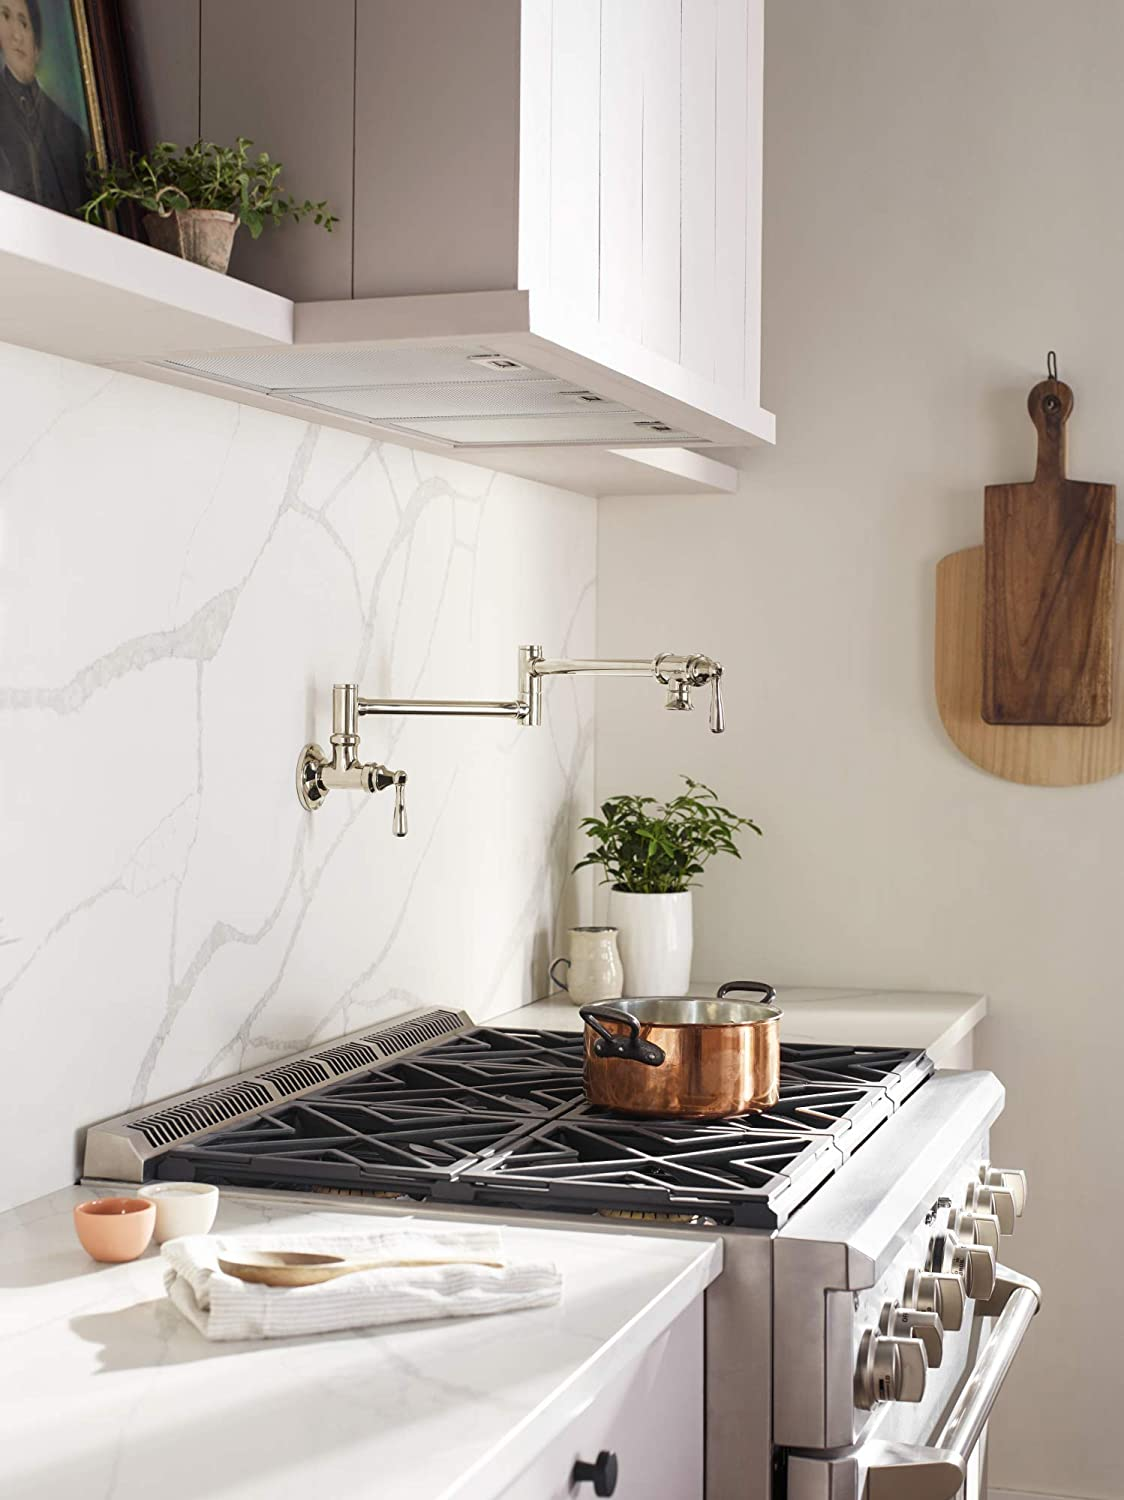 Polished Nickel Moen S664NL Traditional Wall Mount Swing Arm Folding Pot Filler Kitchen Faucet